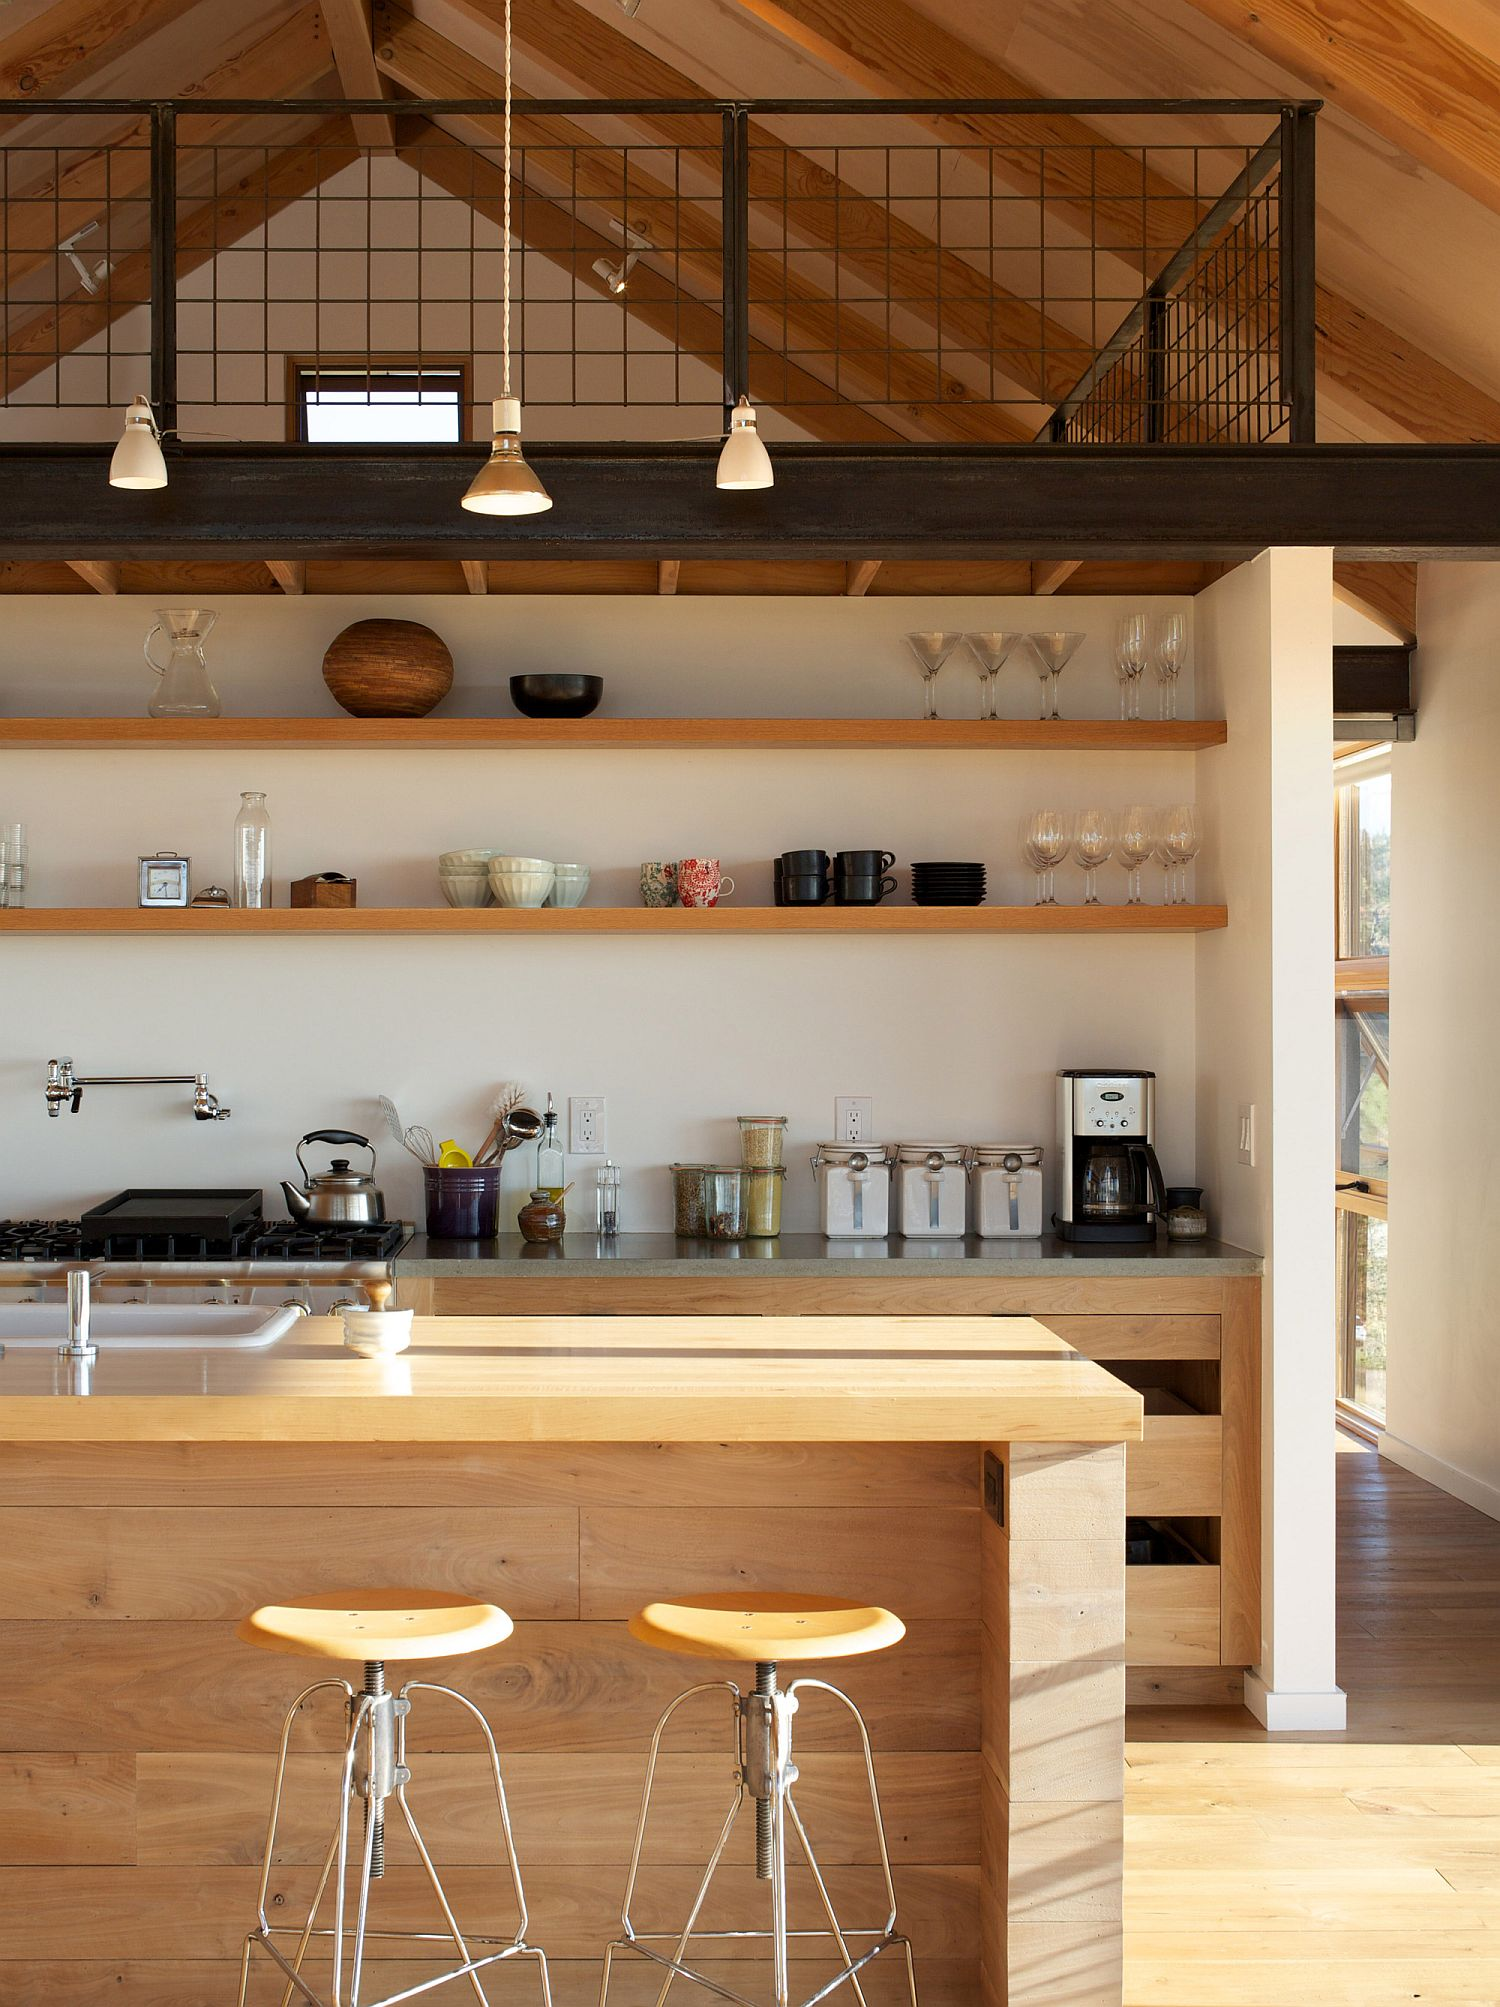 Kitchen-with-mezzanine-level-above-and-smart-pendant-lighting